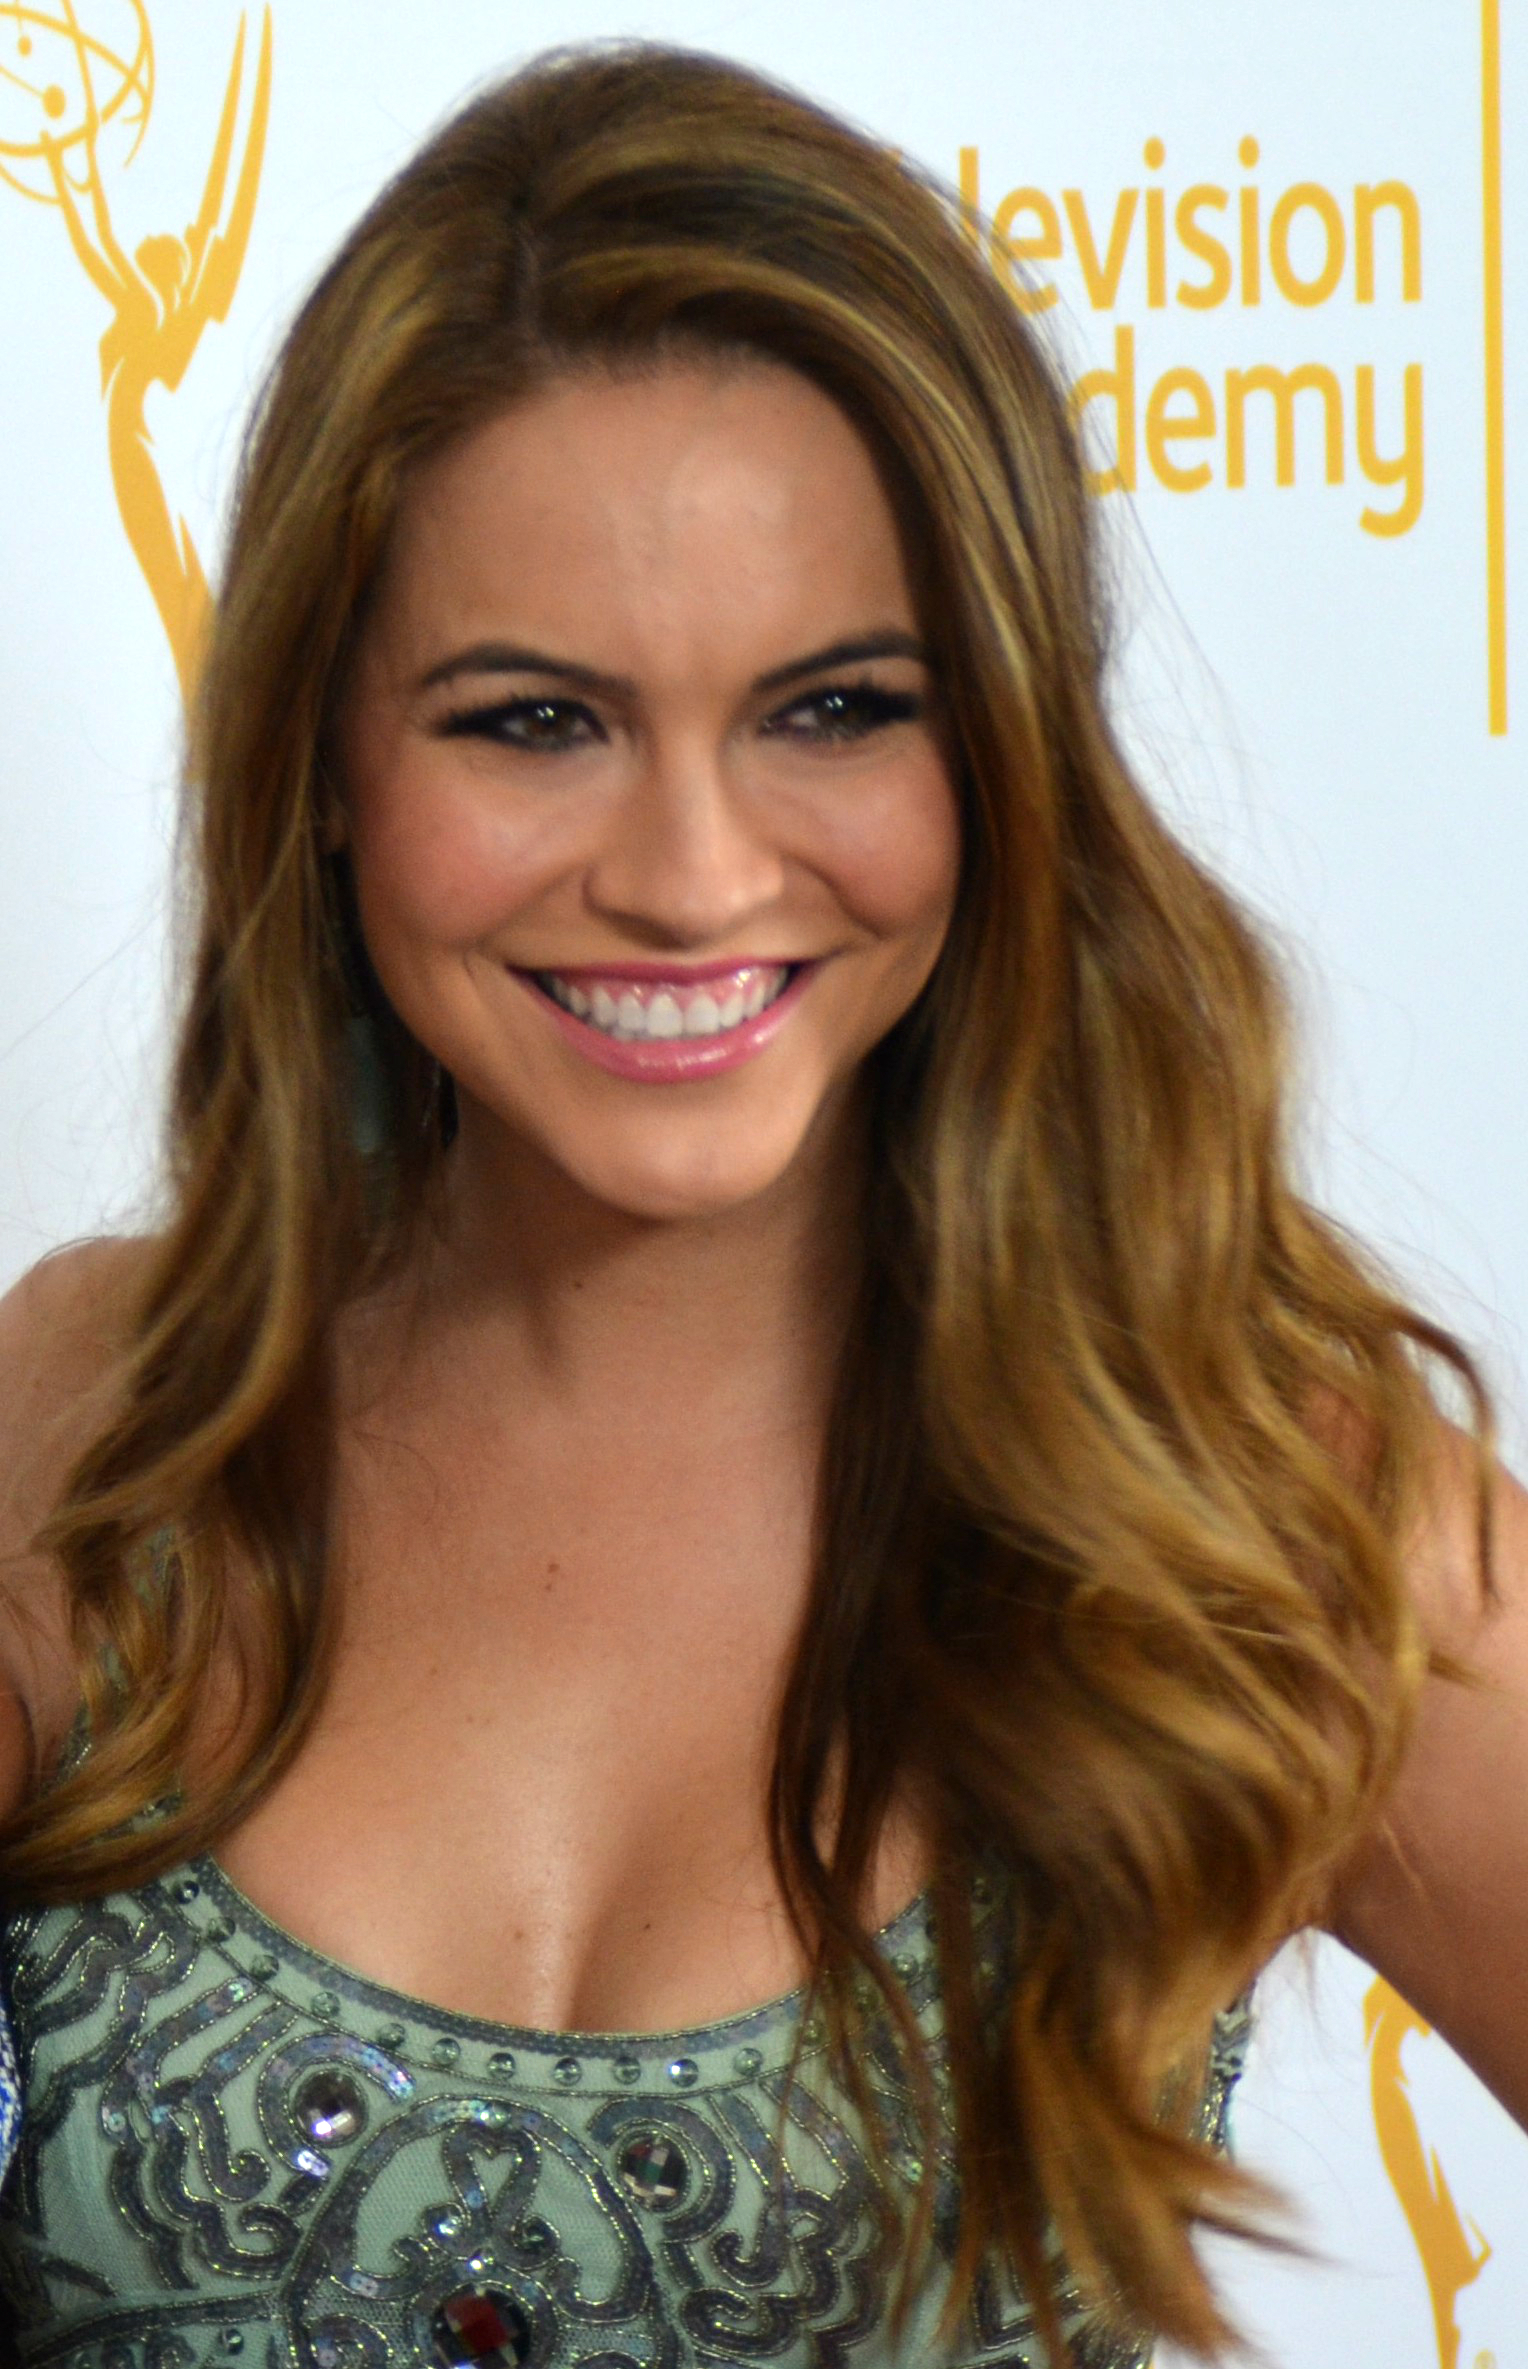 Cleavage Chrishell Stause naked photo 2017